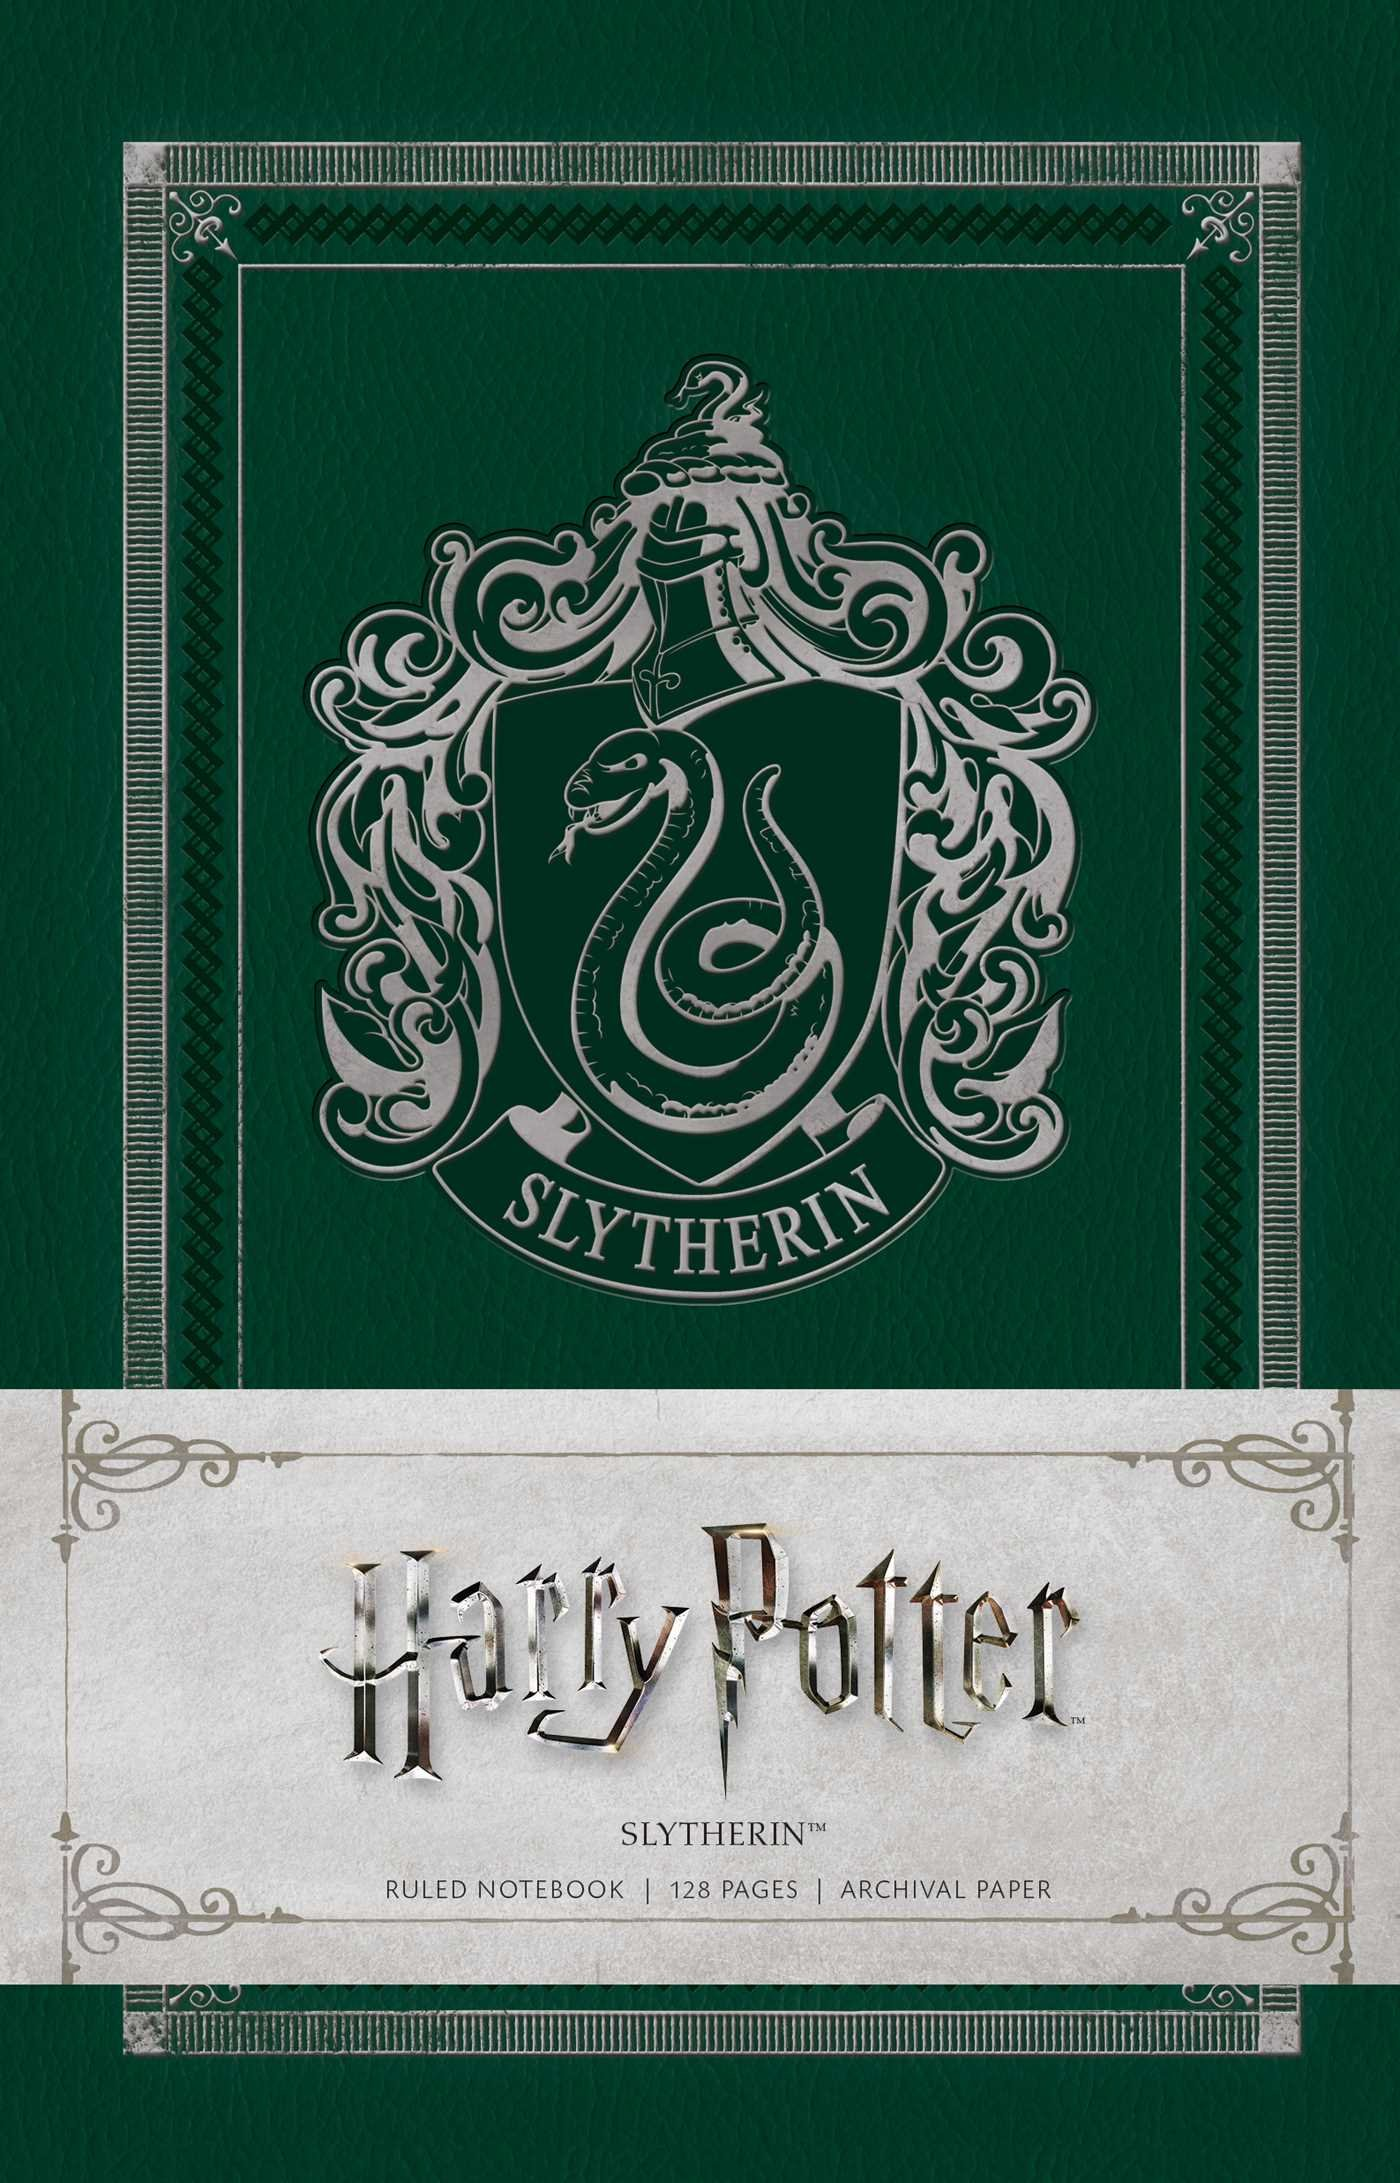 Harry Potter: Slytherin Ruled Notebook: Amazon.es: Insight ...